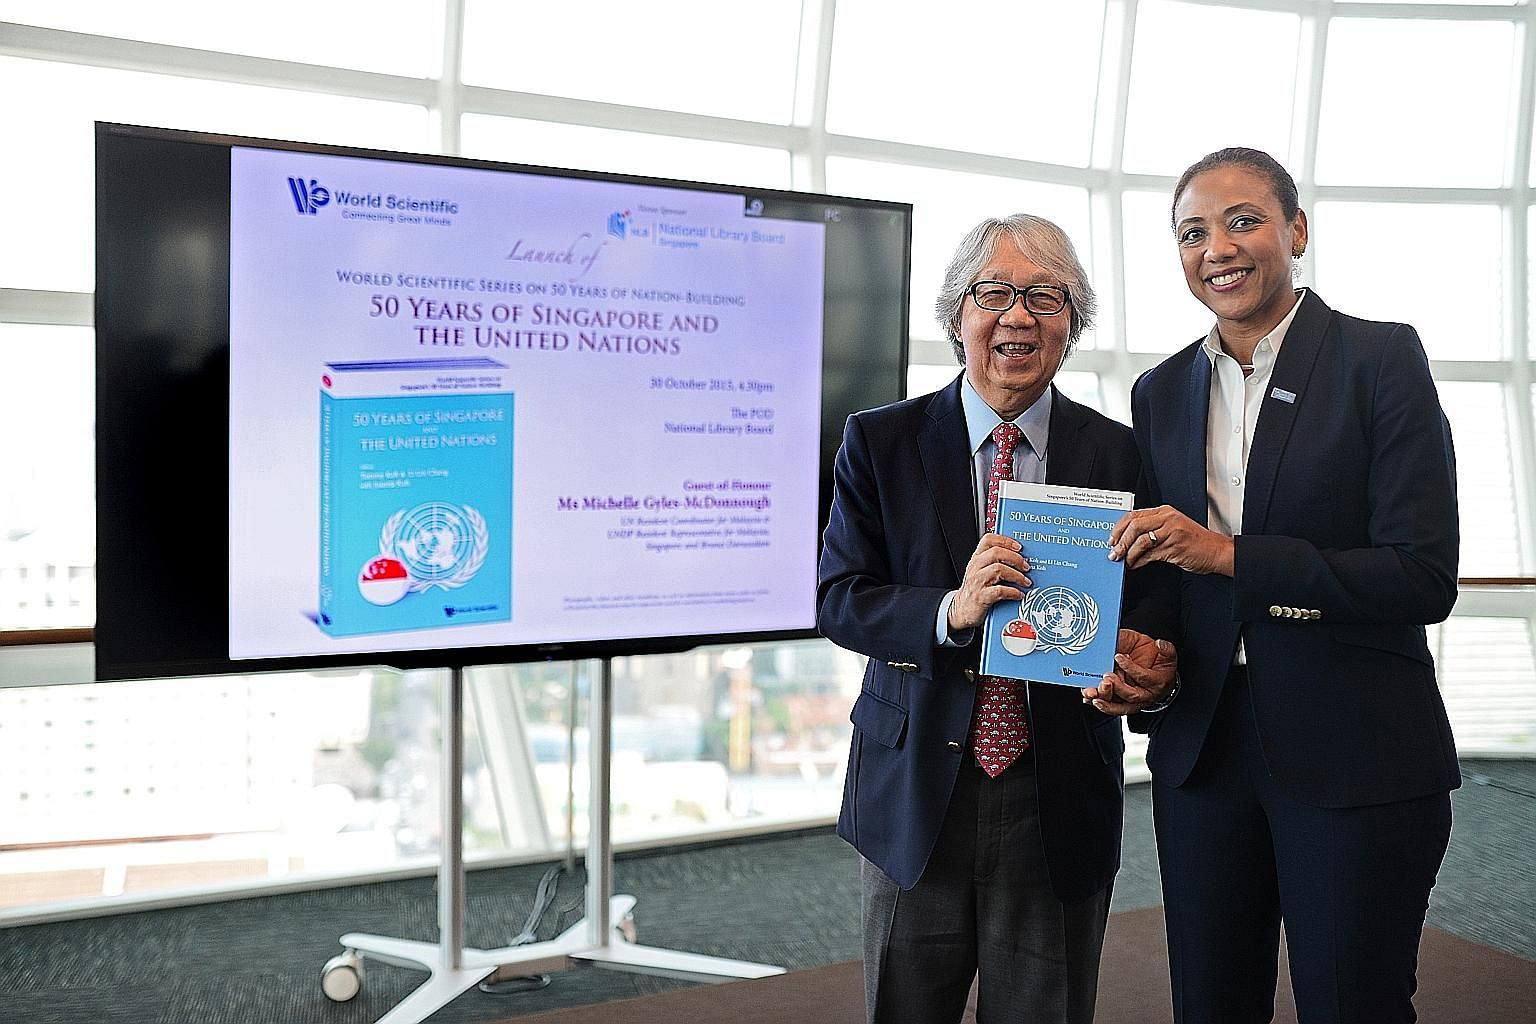 Prof Tommy Koh and Ms Michelle Gyles-McDonnough at the launch of the book at the National Library yesterday.